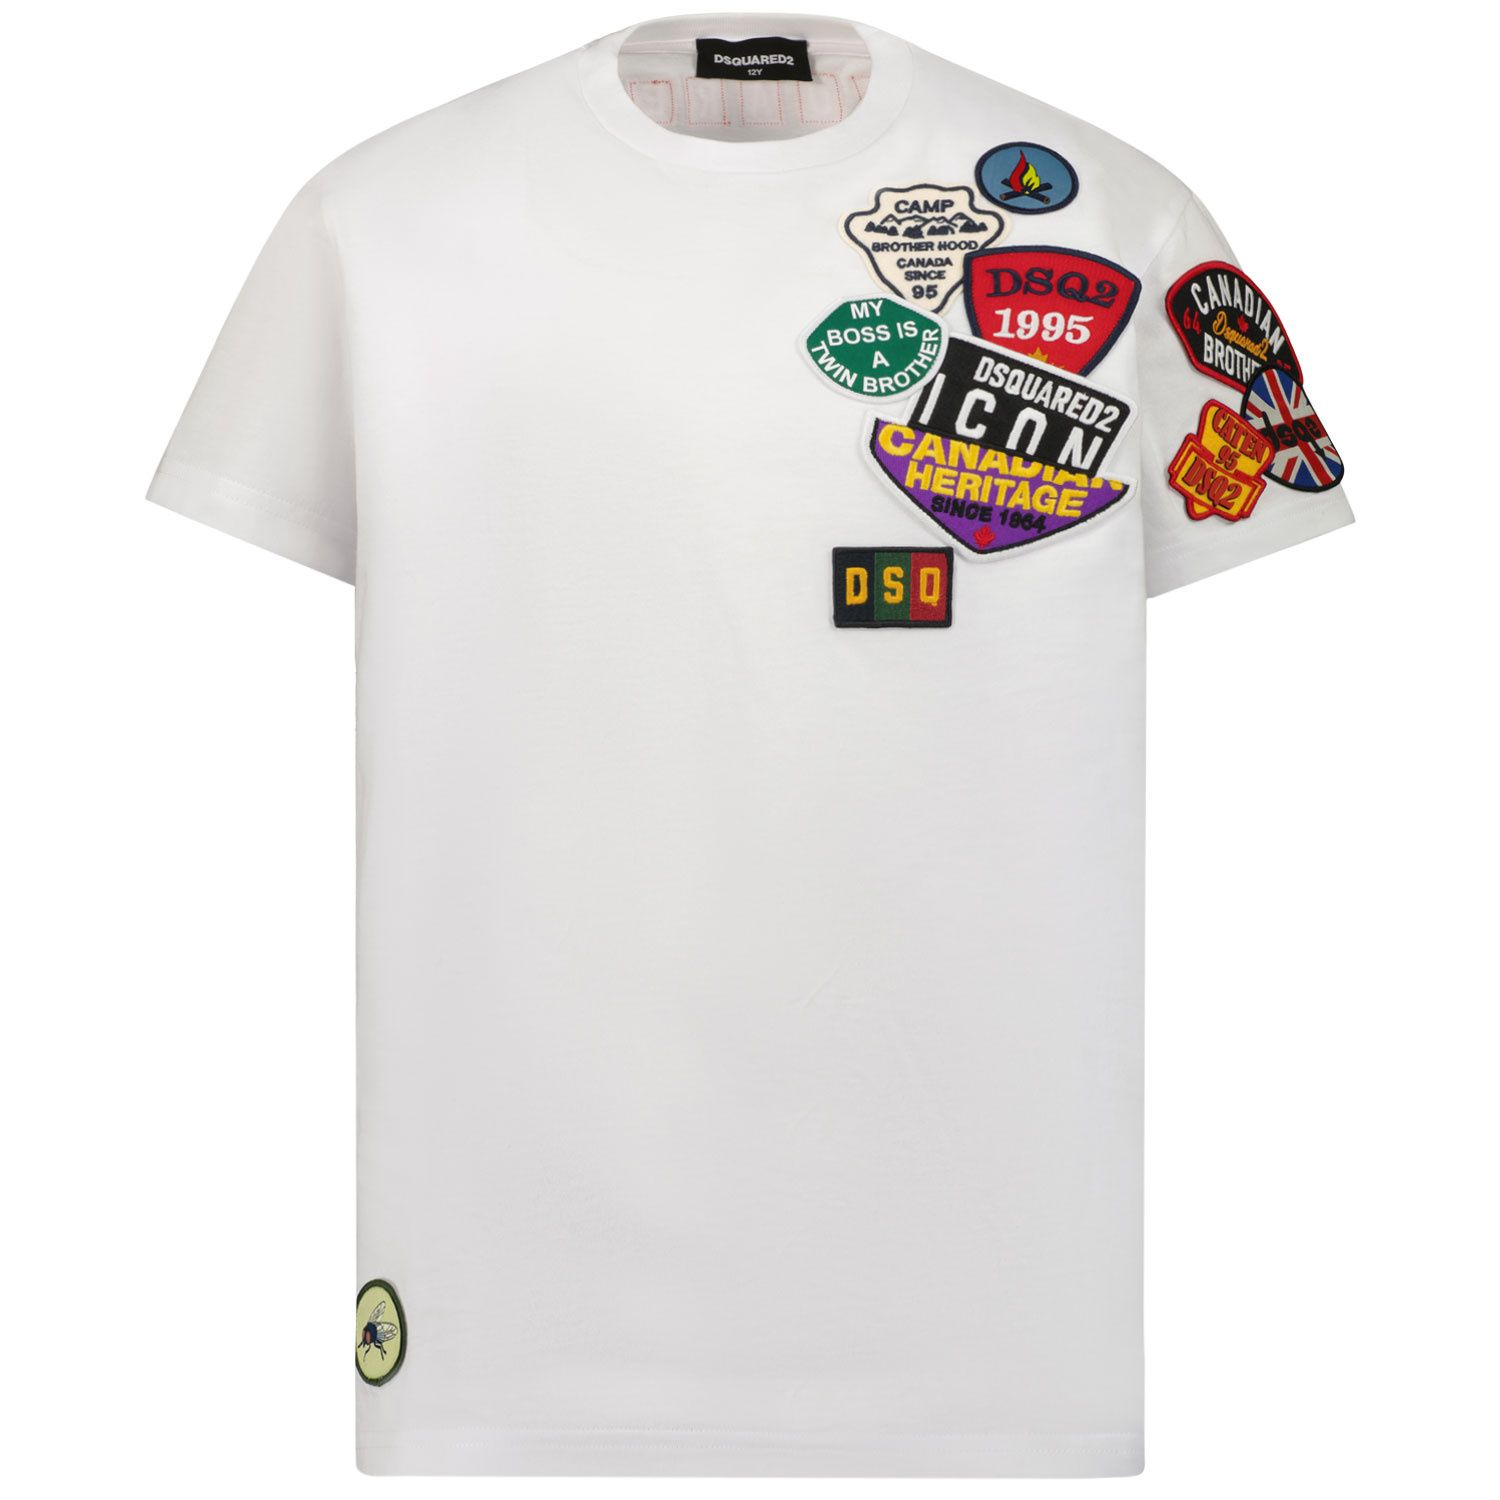 Picture of Dsquared2 DQ0332 kids t-shirt white